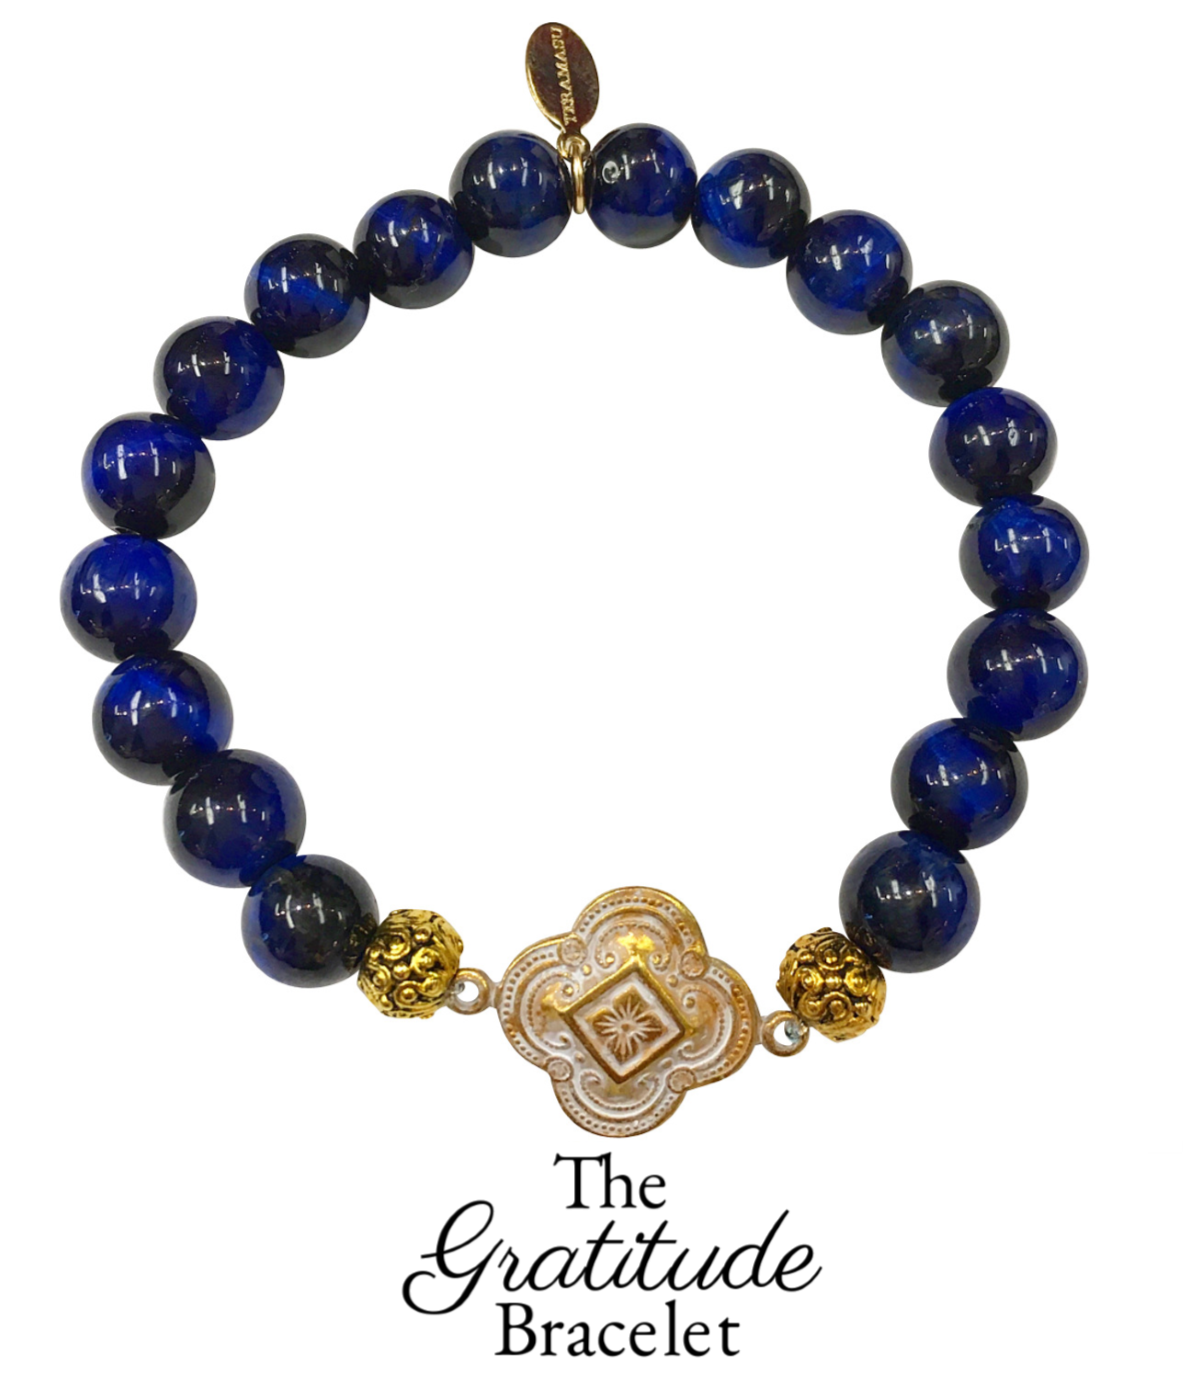 Friday Favorite: Gorgeous & New, Handmade Designer Teramasu Gratitude Bracelet in Navy Blue Tigers Eye from the Teramasu Gratitude Bracelet Collection